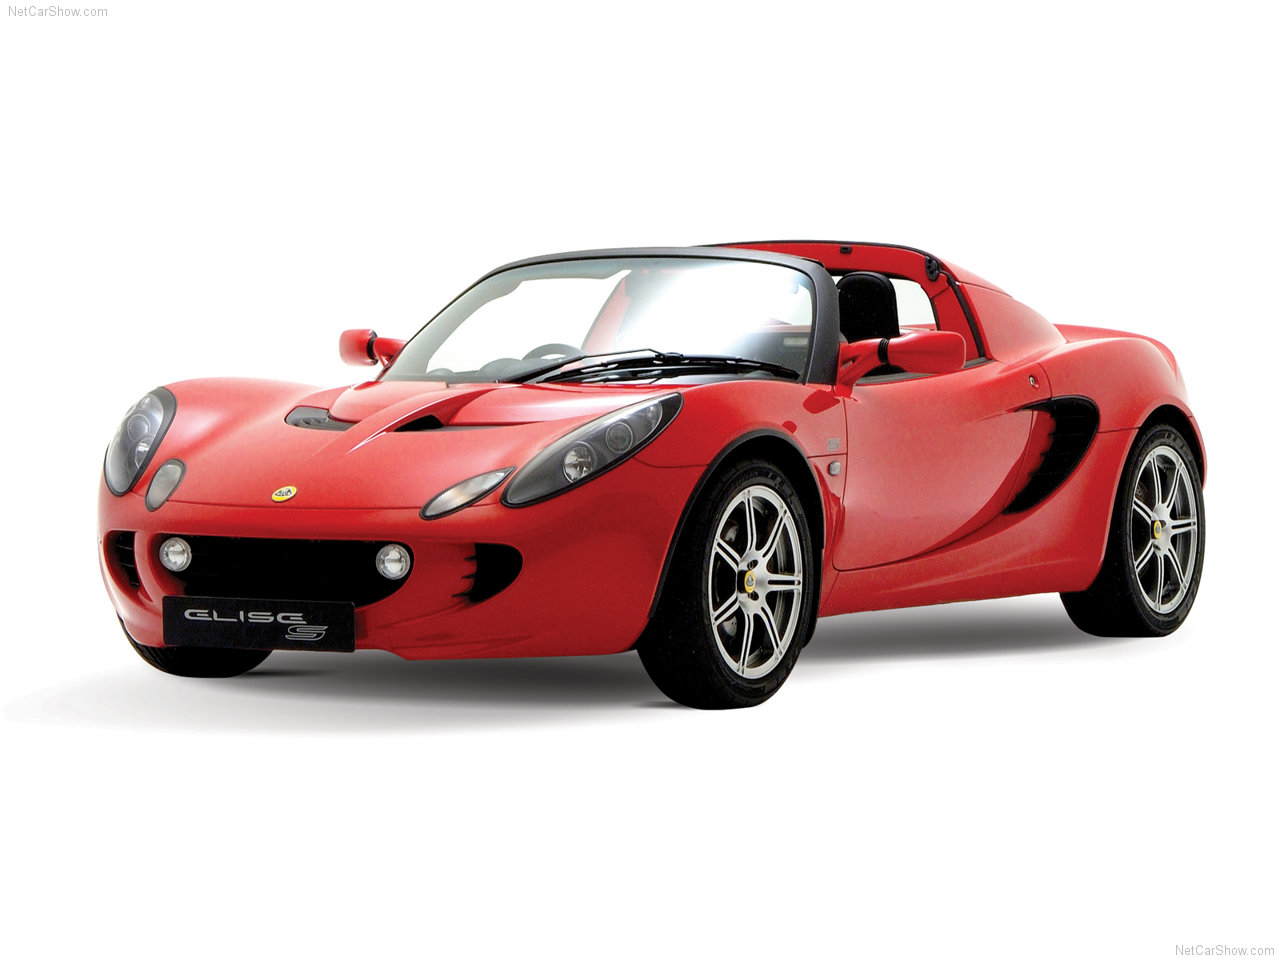 2007 lotus elise s automobile. Black Bedroom Furniture Sets. Home Design Ideas